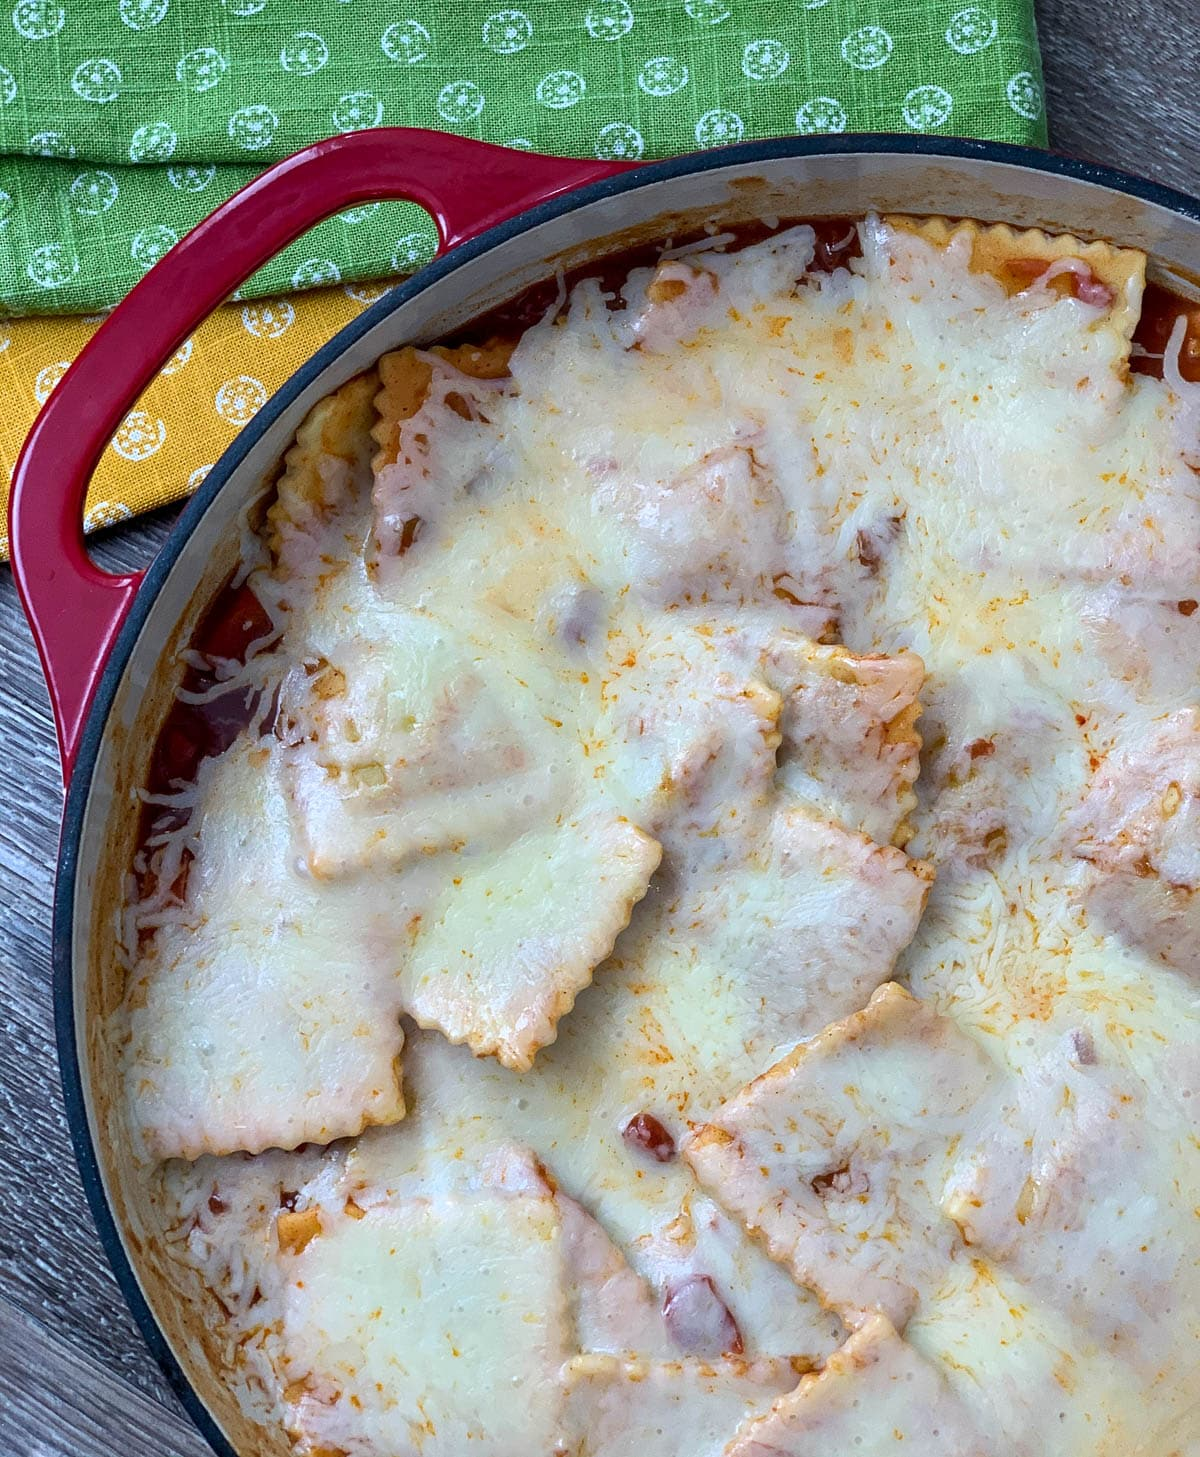 baked ravioli with melted cheese